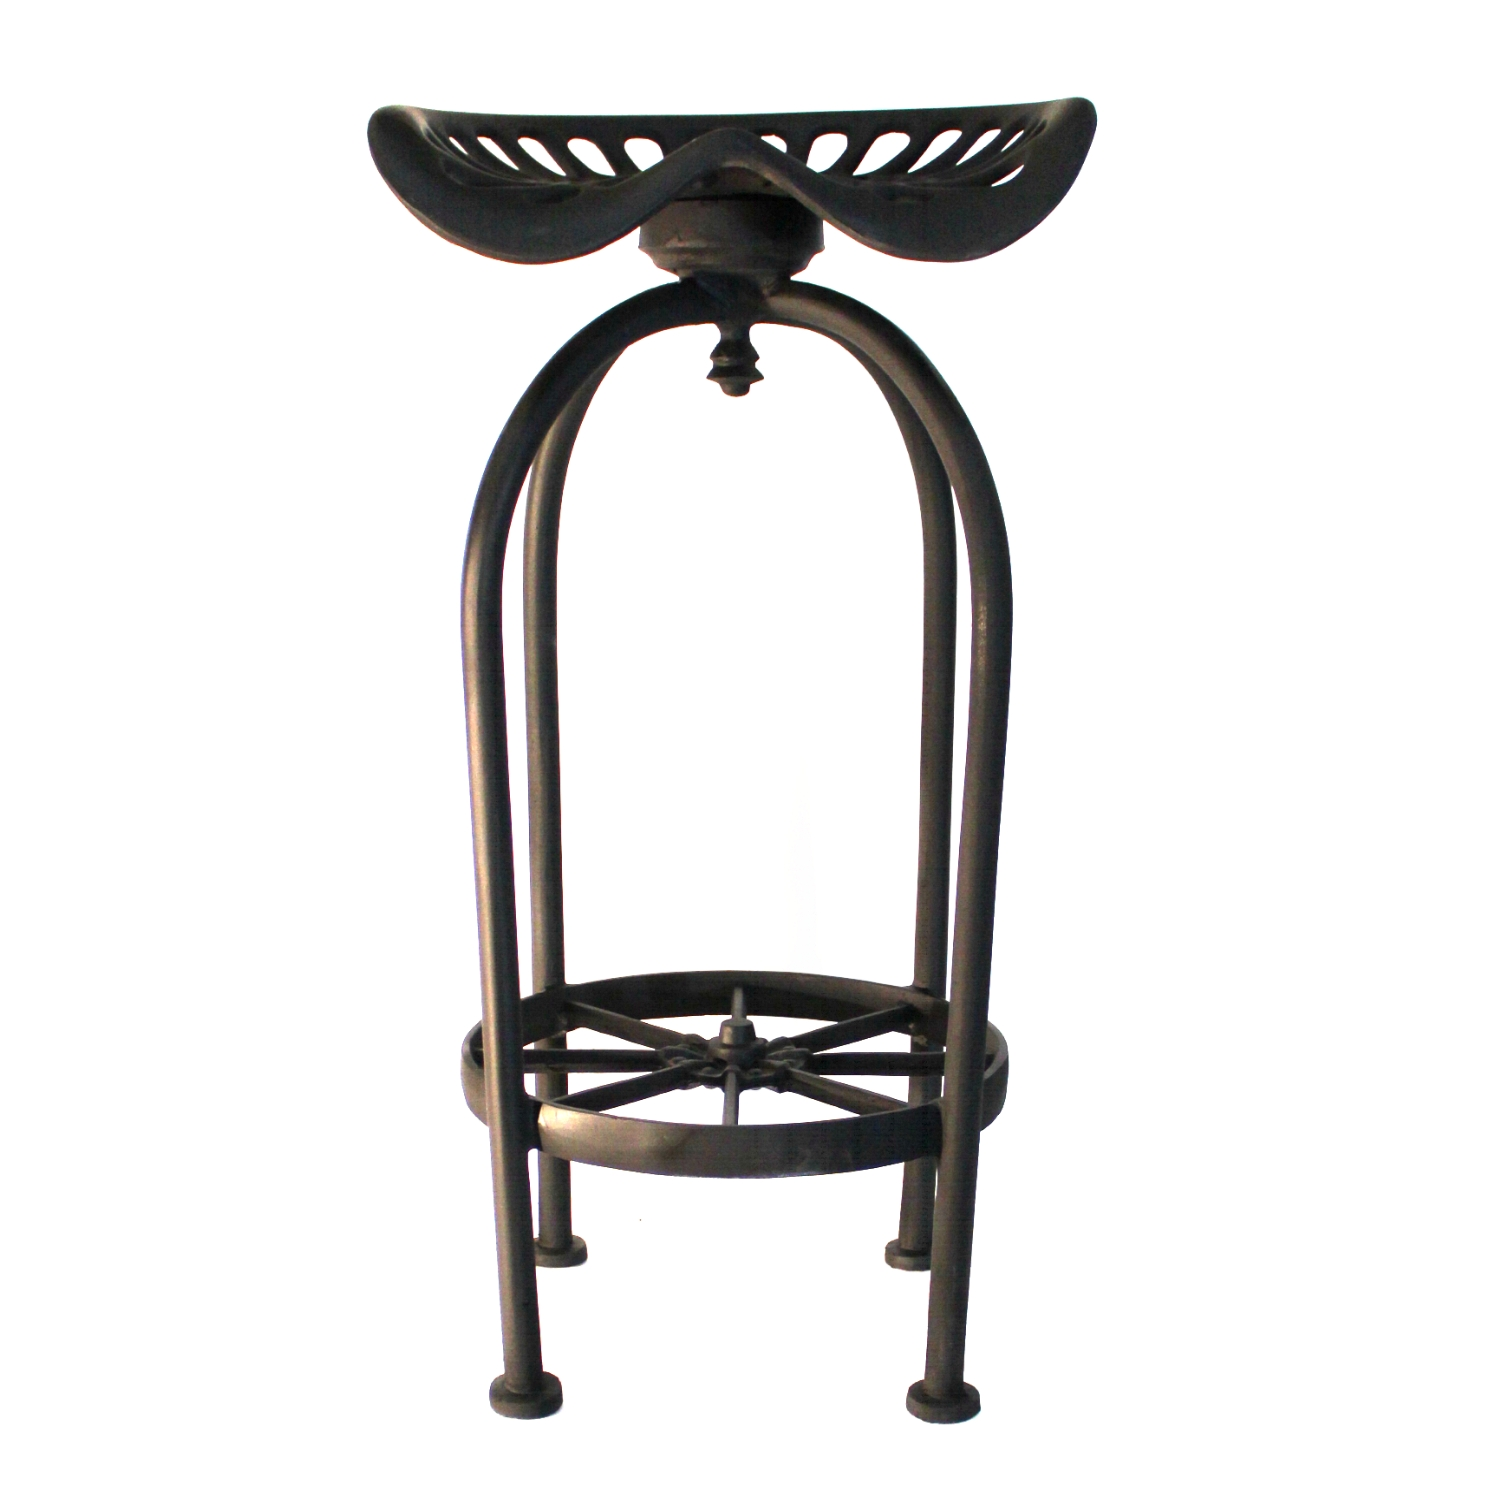 Bar Stool Chairs Pair Of Tractor Bar Stools Best Seating With Foot Rest Aluminum Wagon Wheel